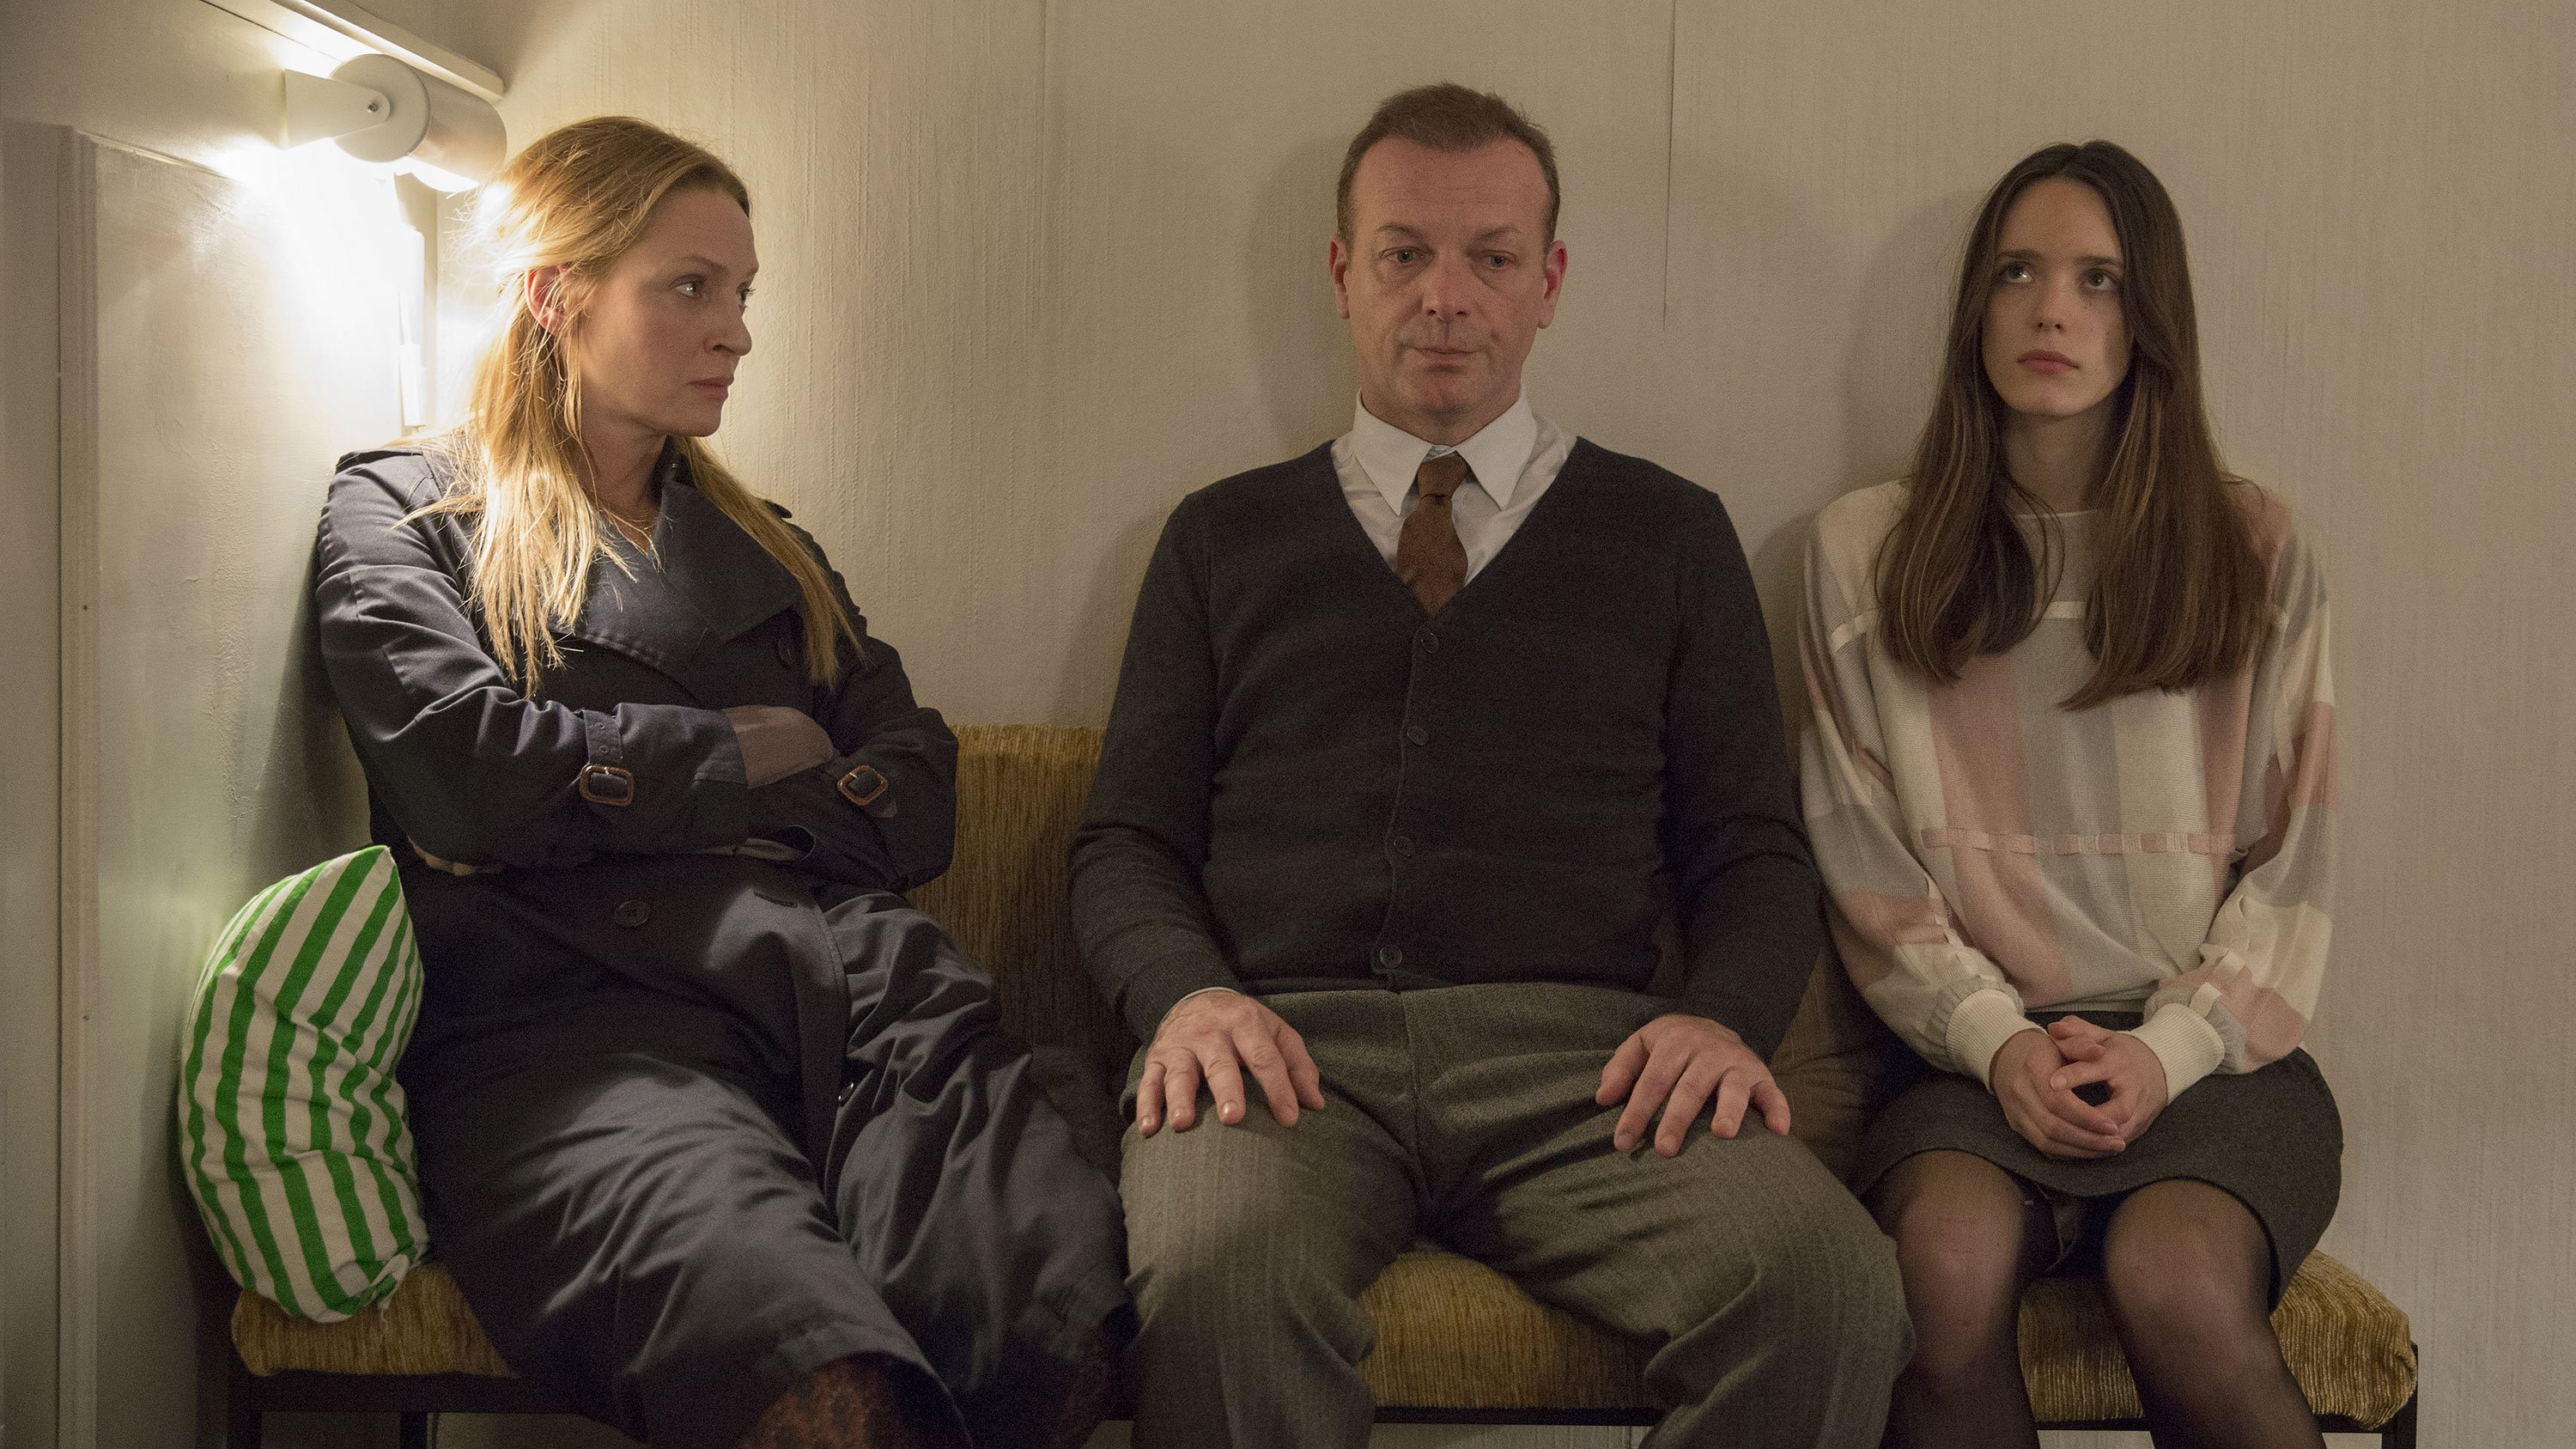 Photo du film Nymphomaniac - Volume 1 de Lars von Trier avec Uma Thurman et Stacy Martin